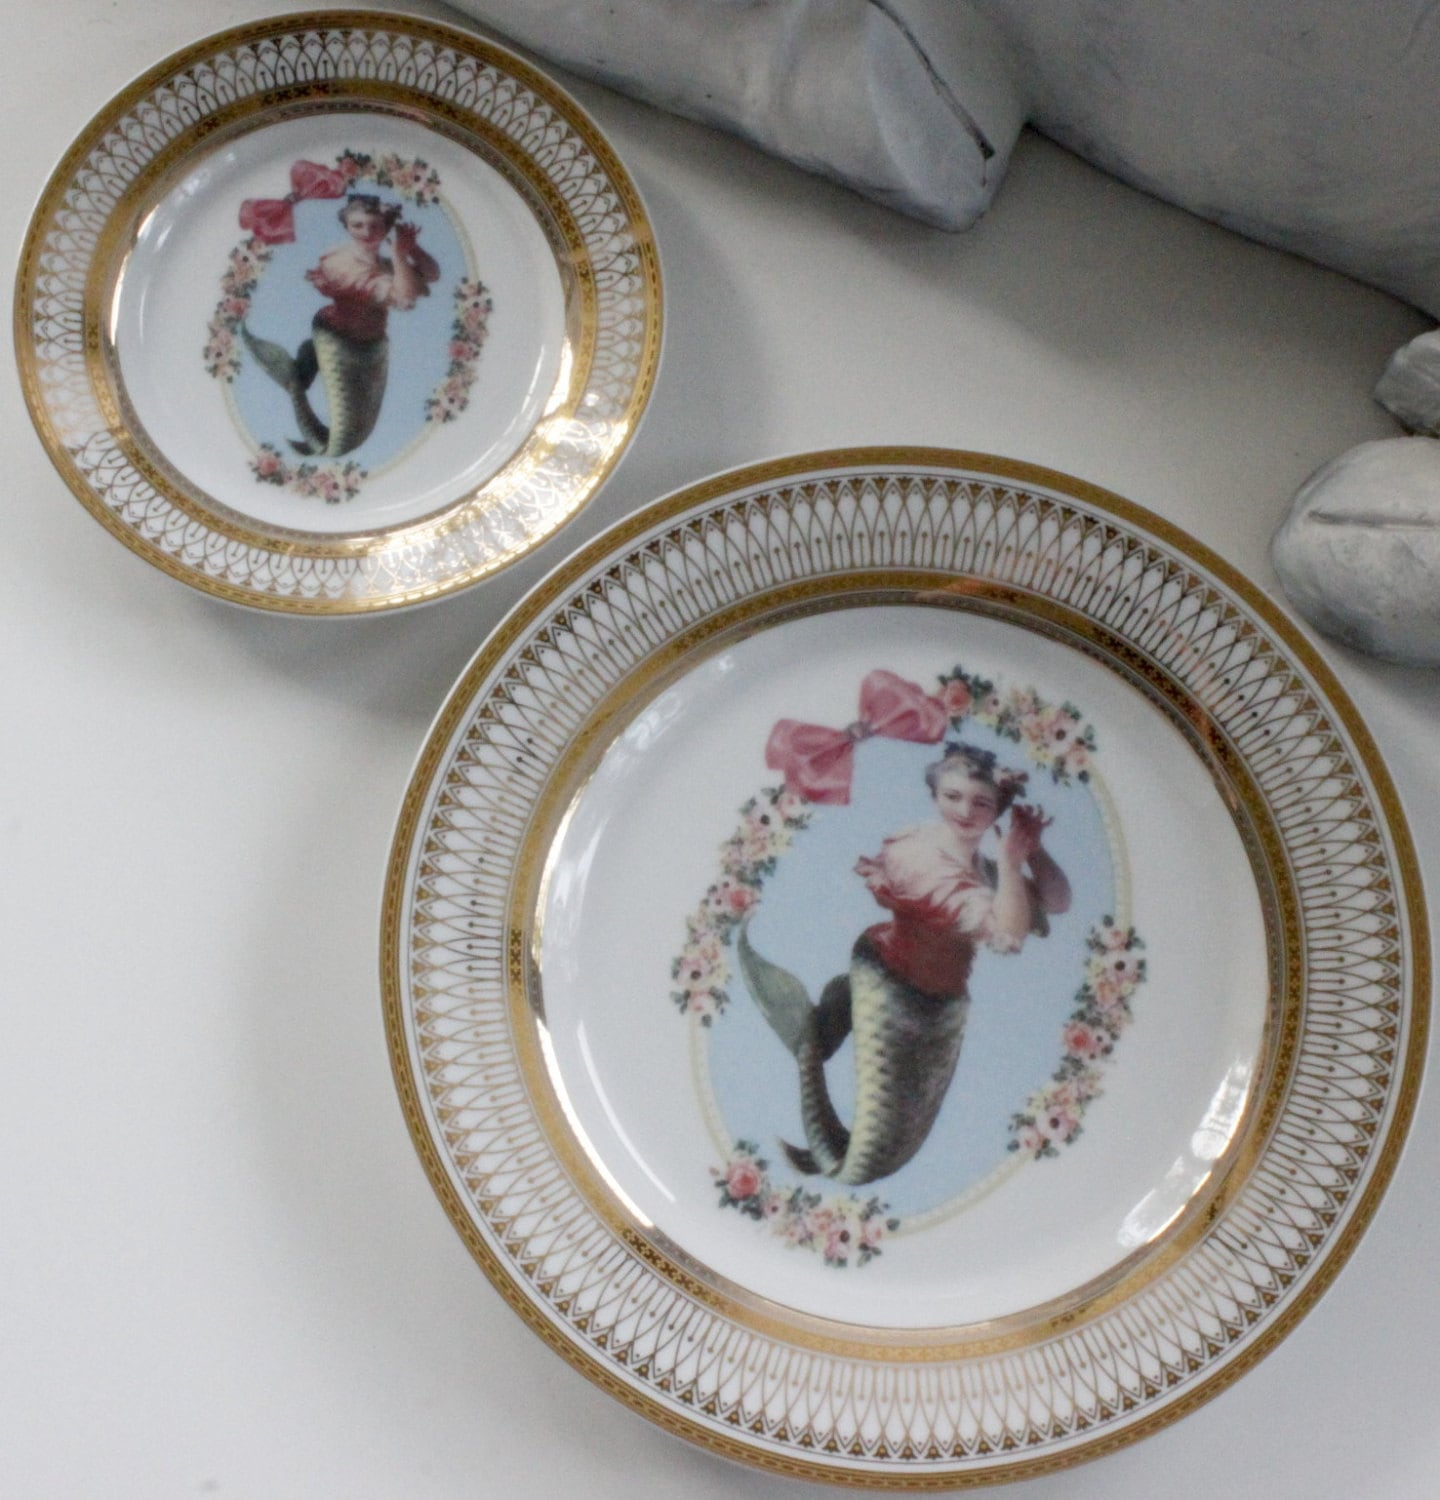 Gold or Silver Mermaid Plates / Dishes Nautical Plates